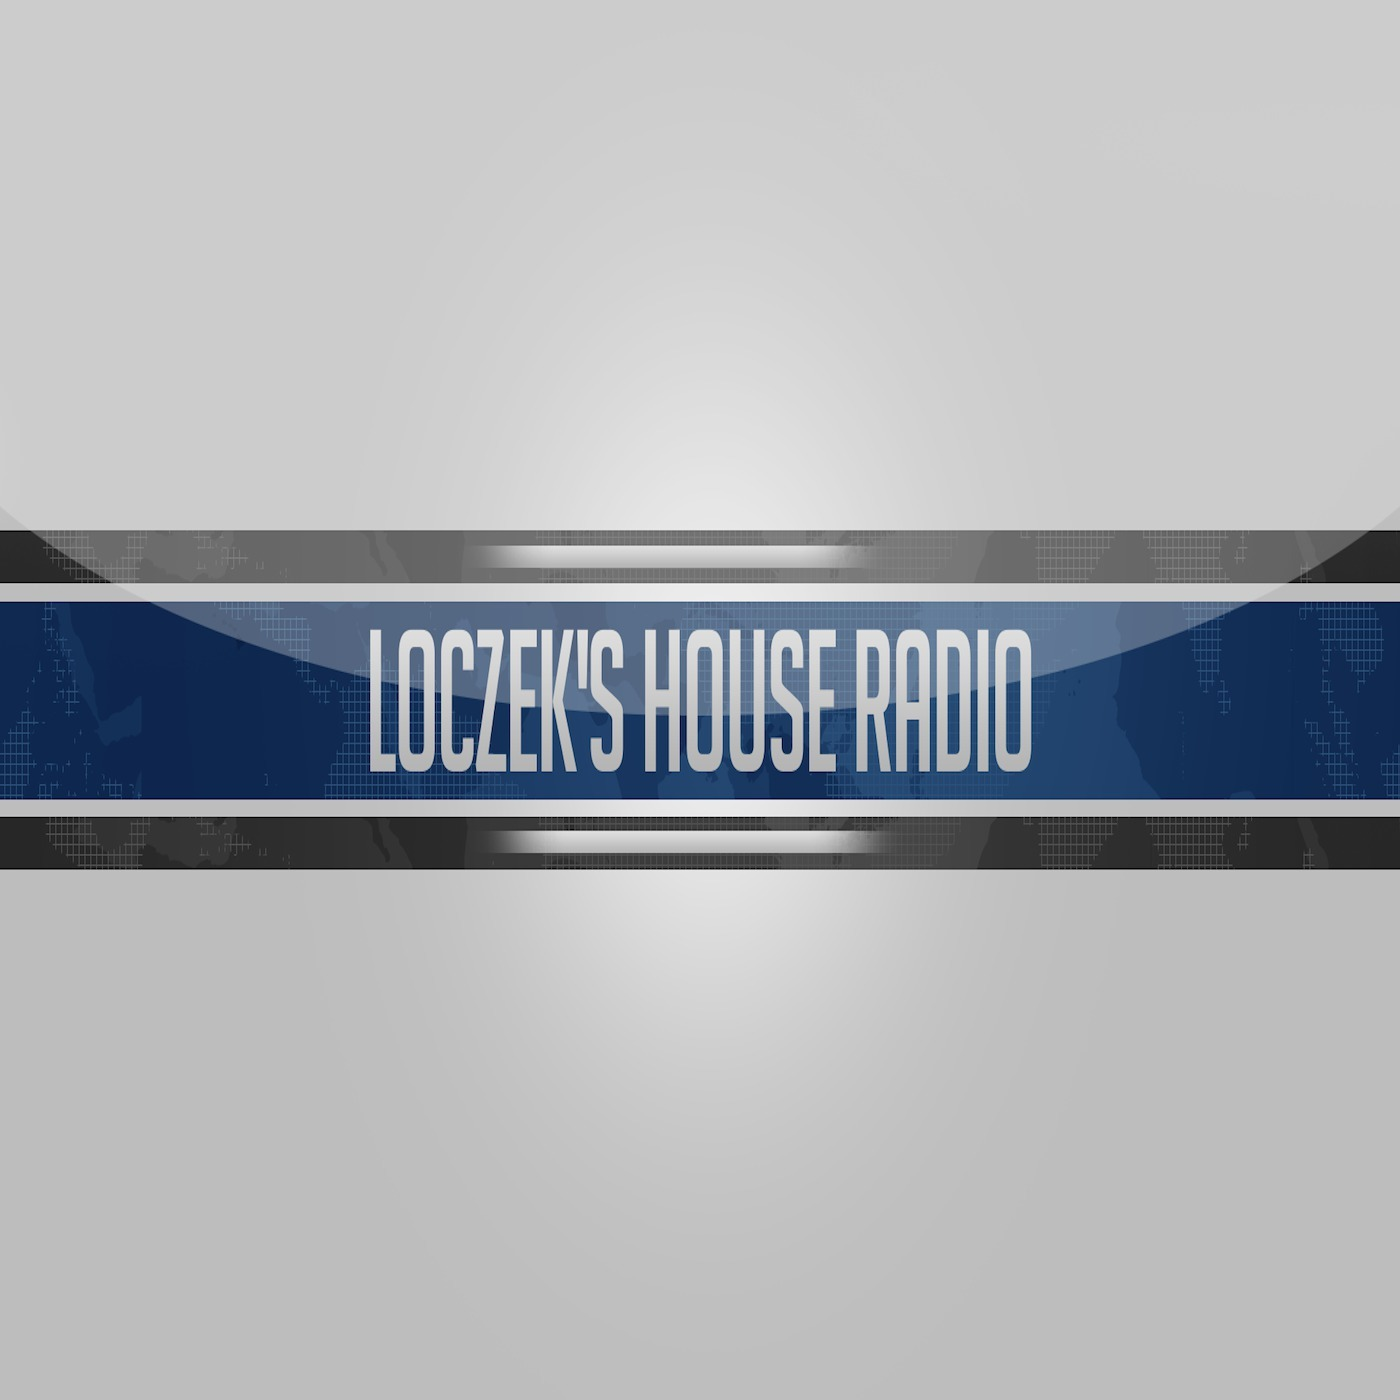 Loczek's HOUSE Radio